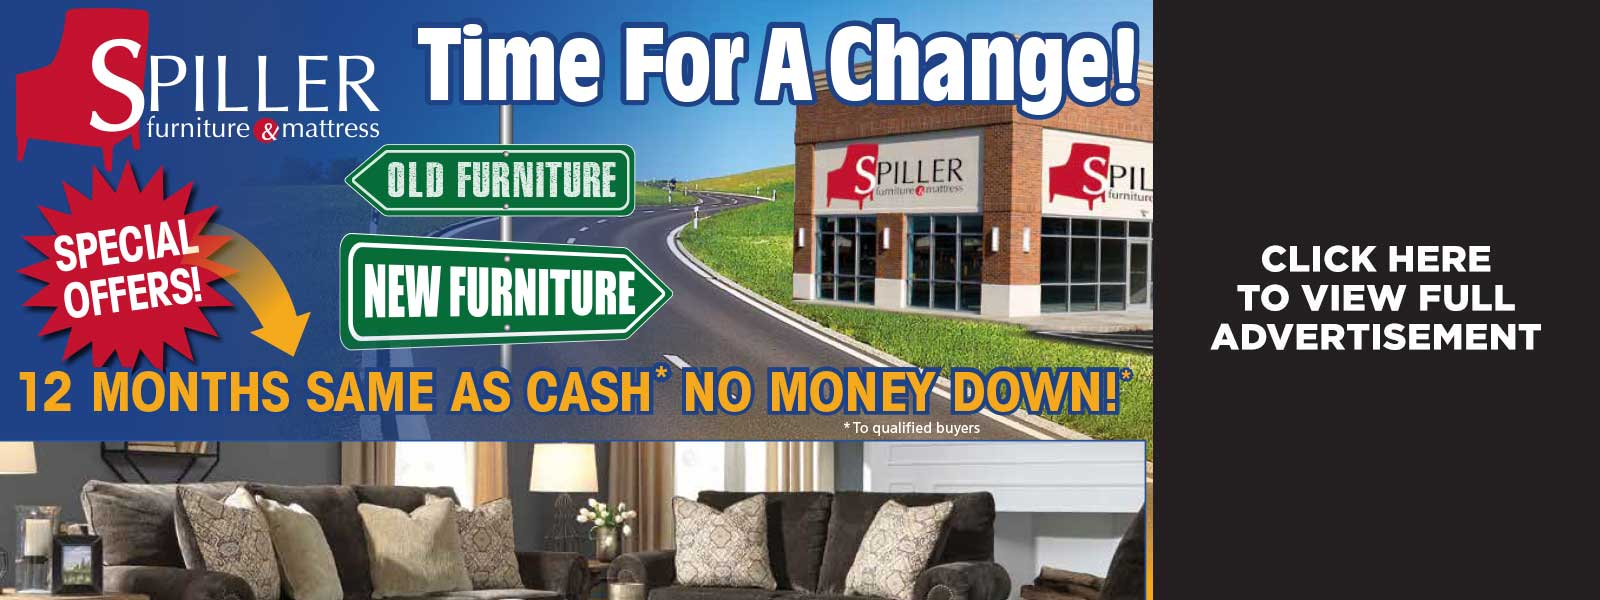 Time-For-Change-Banner